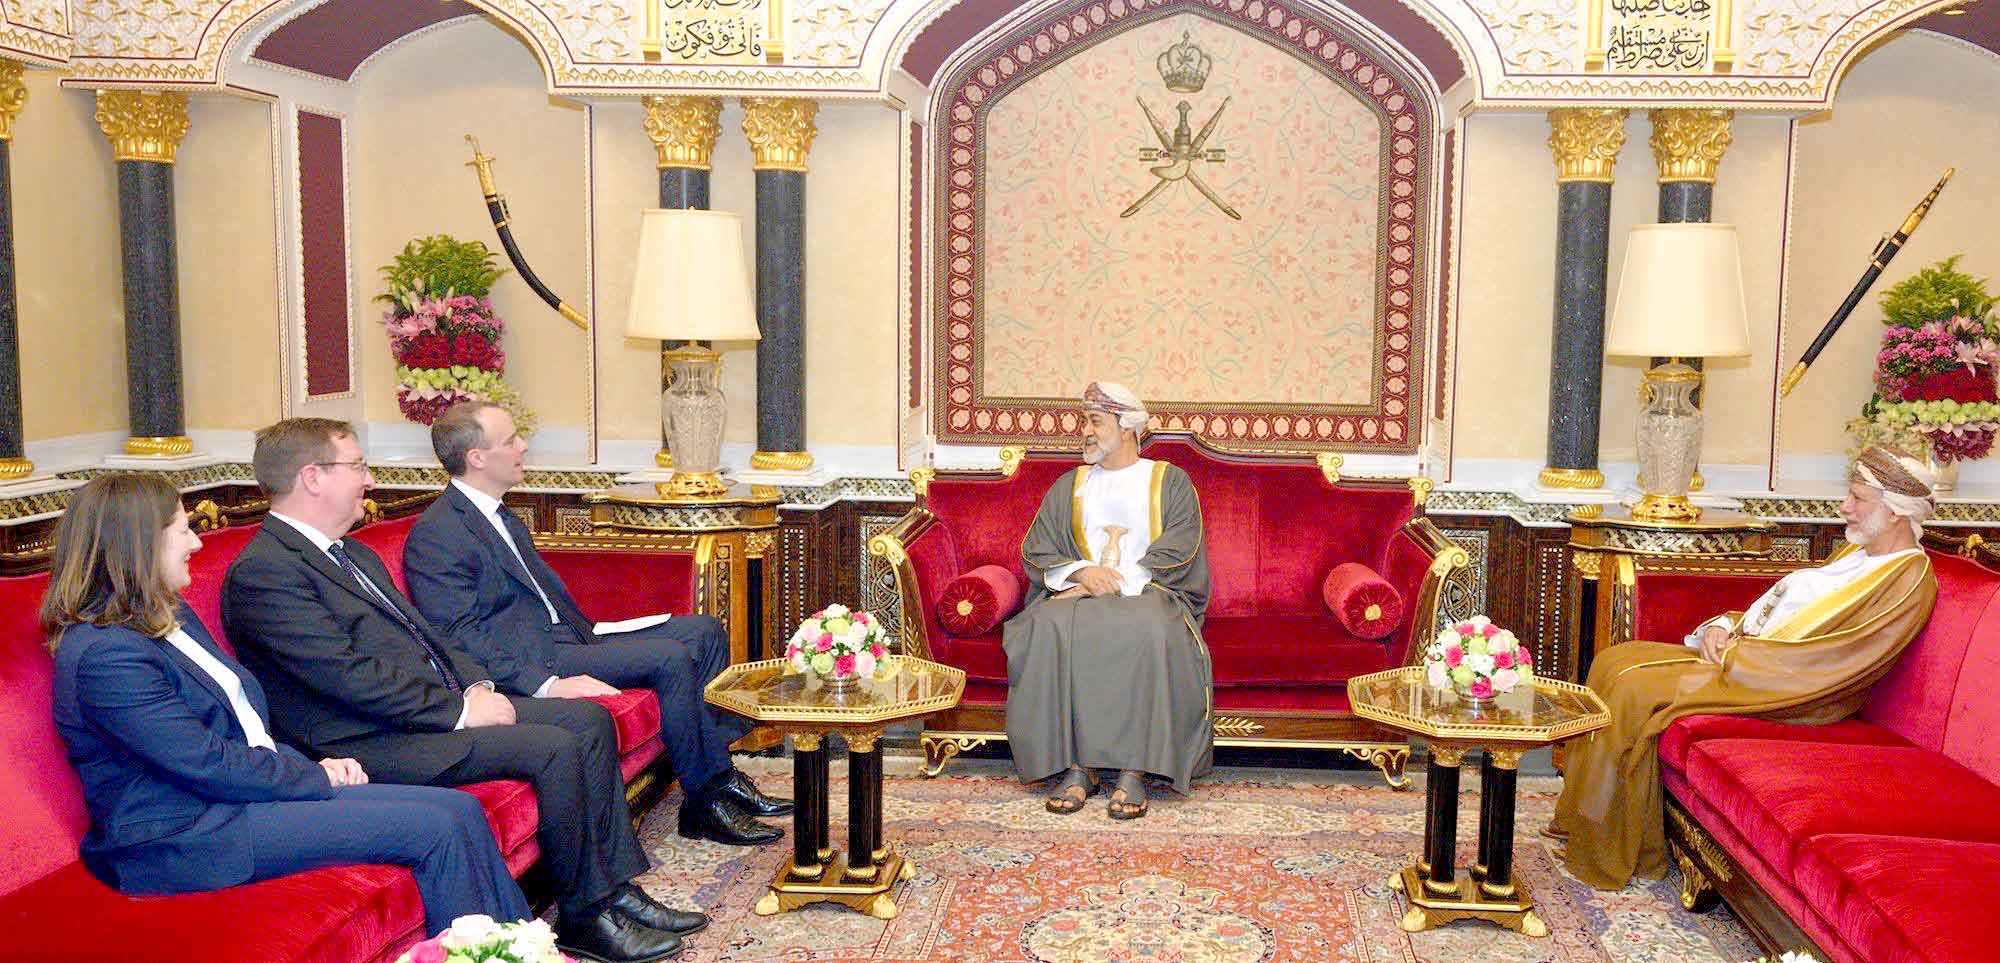 Omani Sultan Haitham bin Tariq Al Said (C) meets with British Foreign Minister Dominic Raab (3rd L) in Muscat, March 2. (British Embassy in Oman)